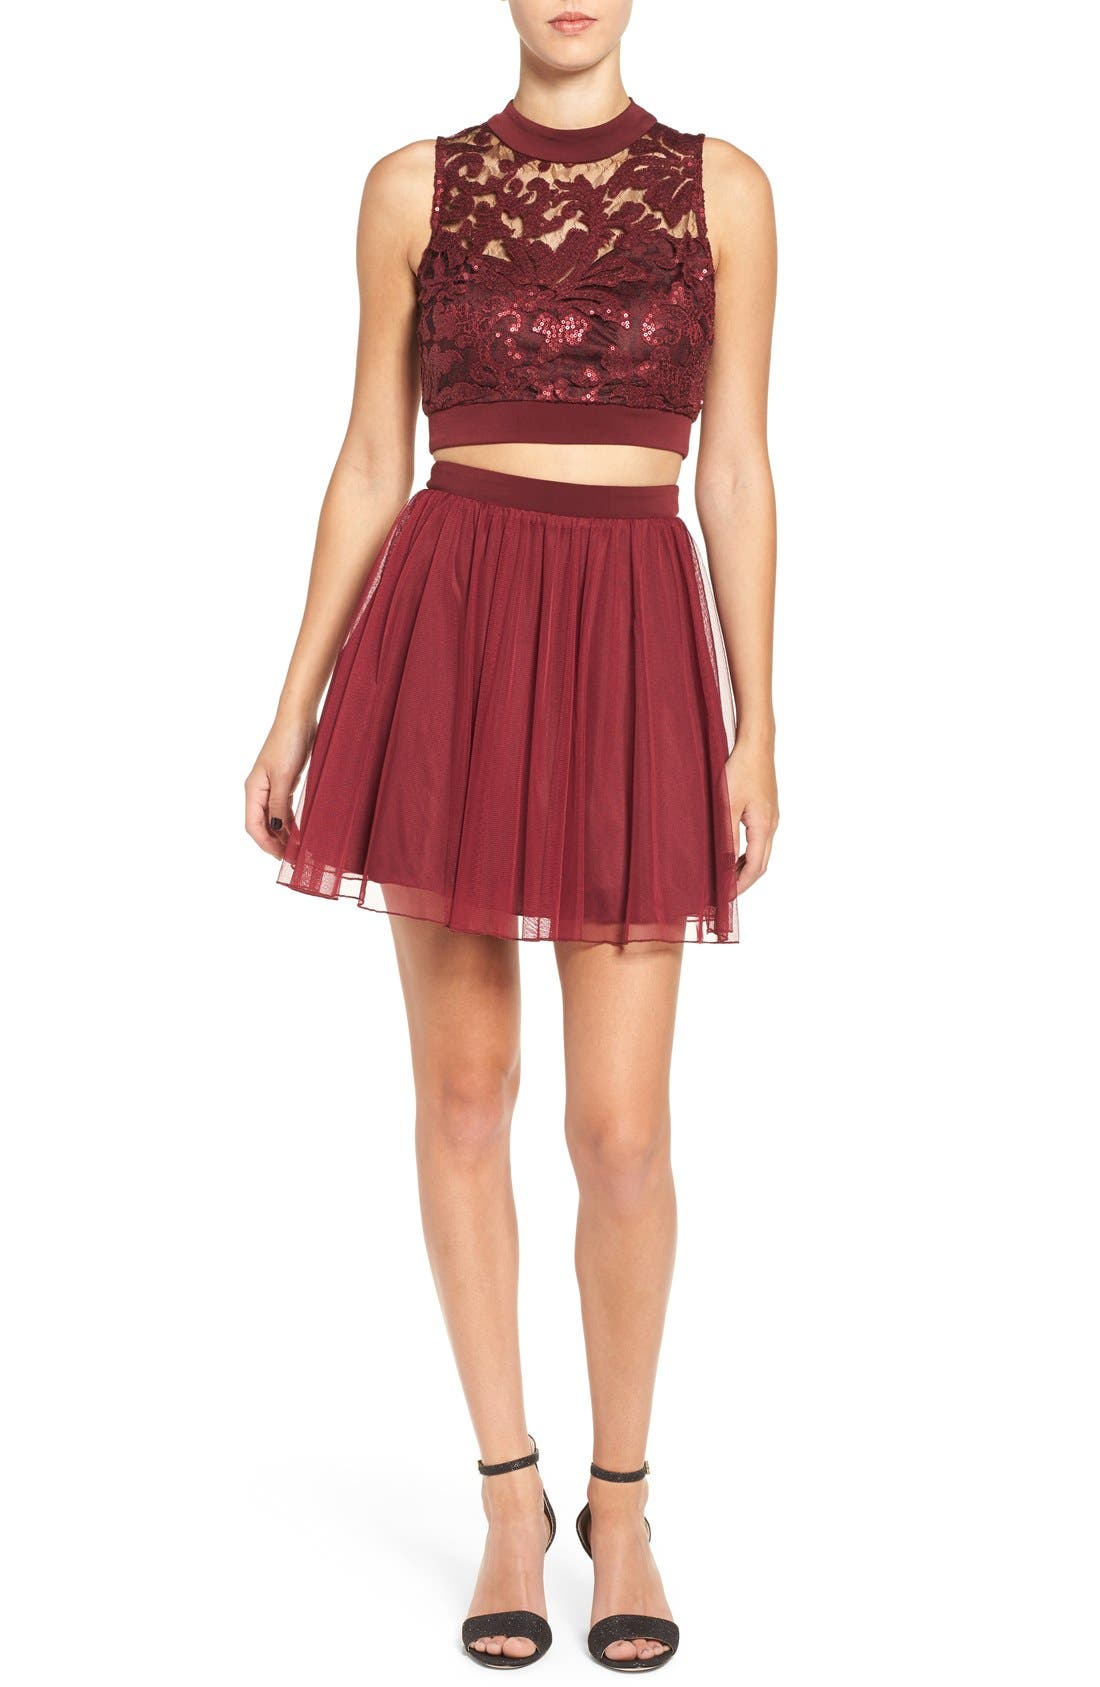 Main Image - Speechless Sequin Lace Two-Piece Dress